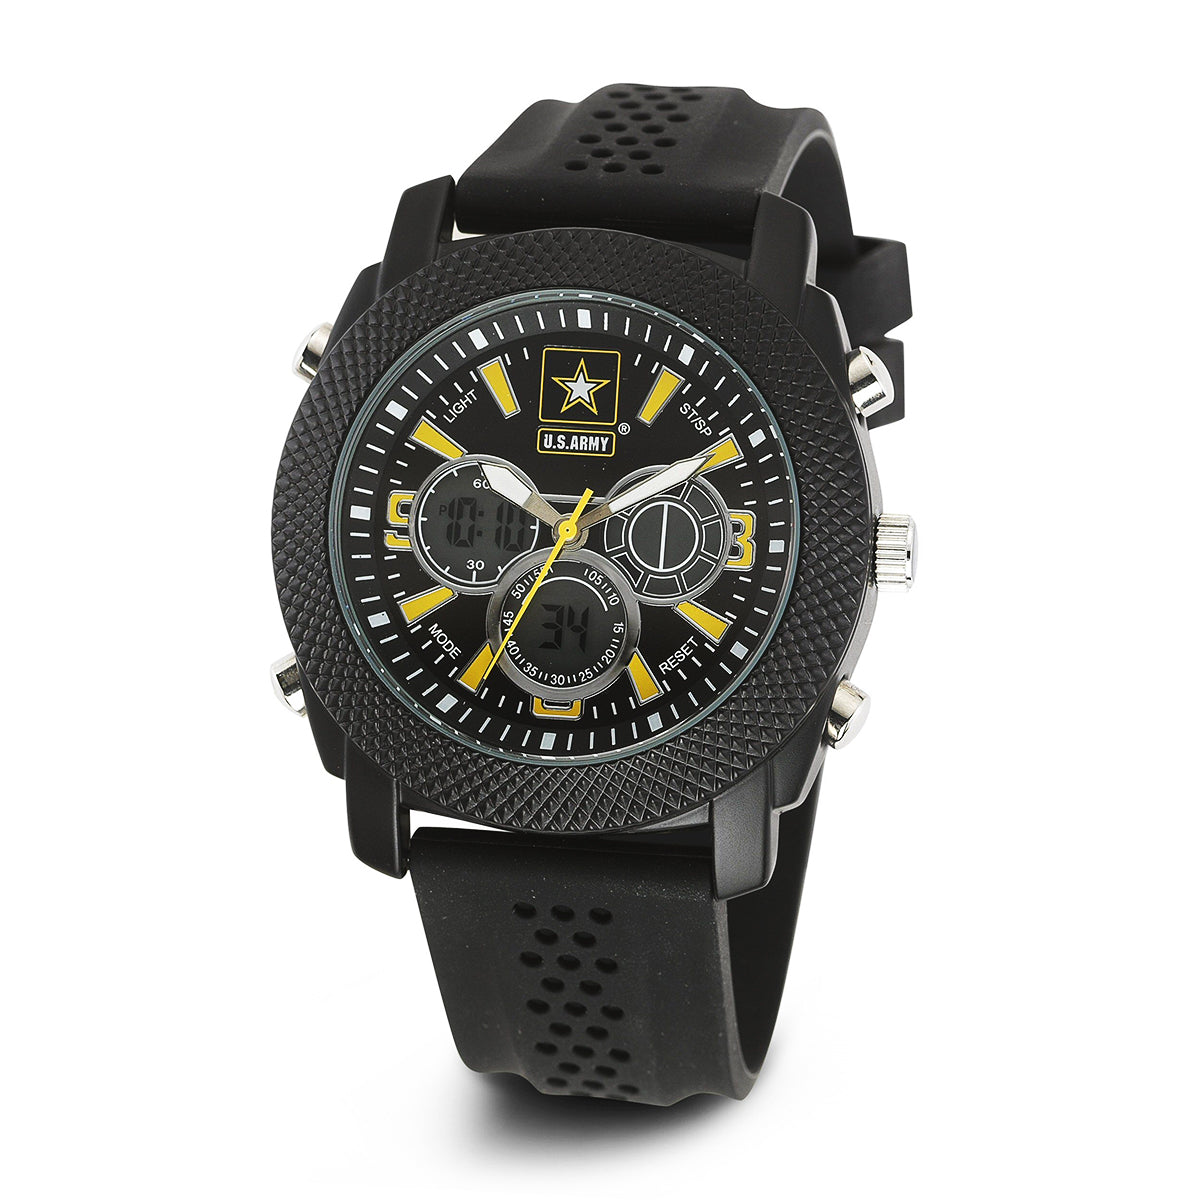 U.S. Army C21 | Analog-Digital Display Quartz Multi-function Watch